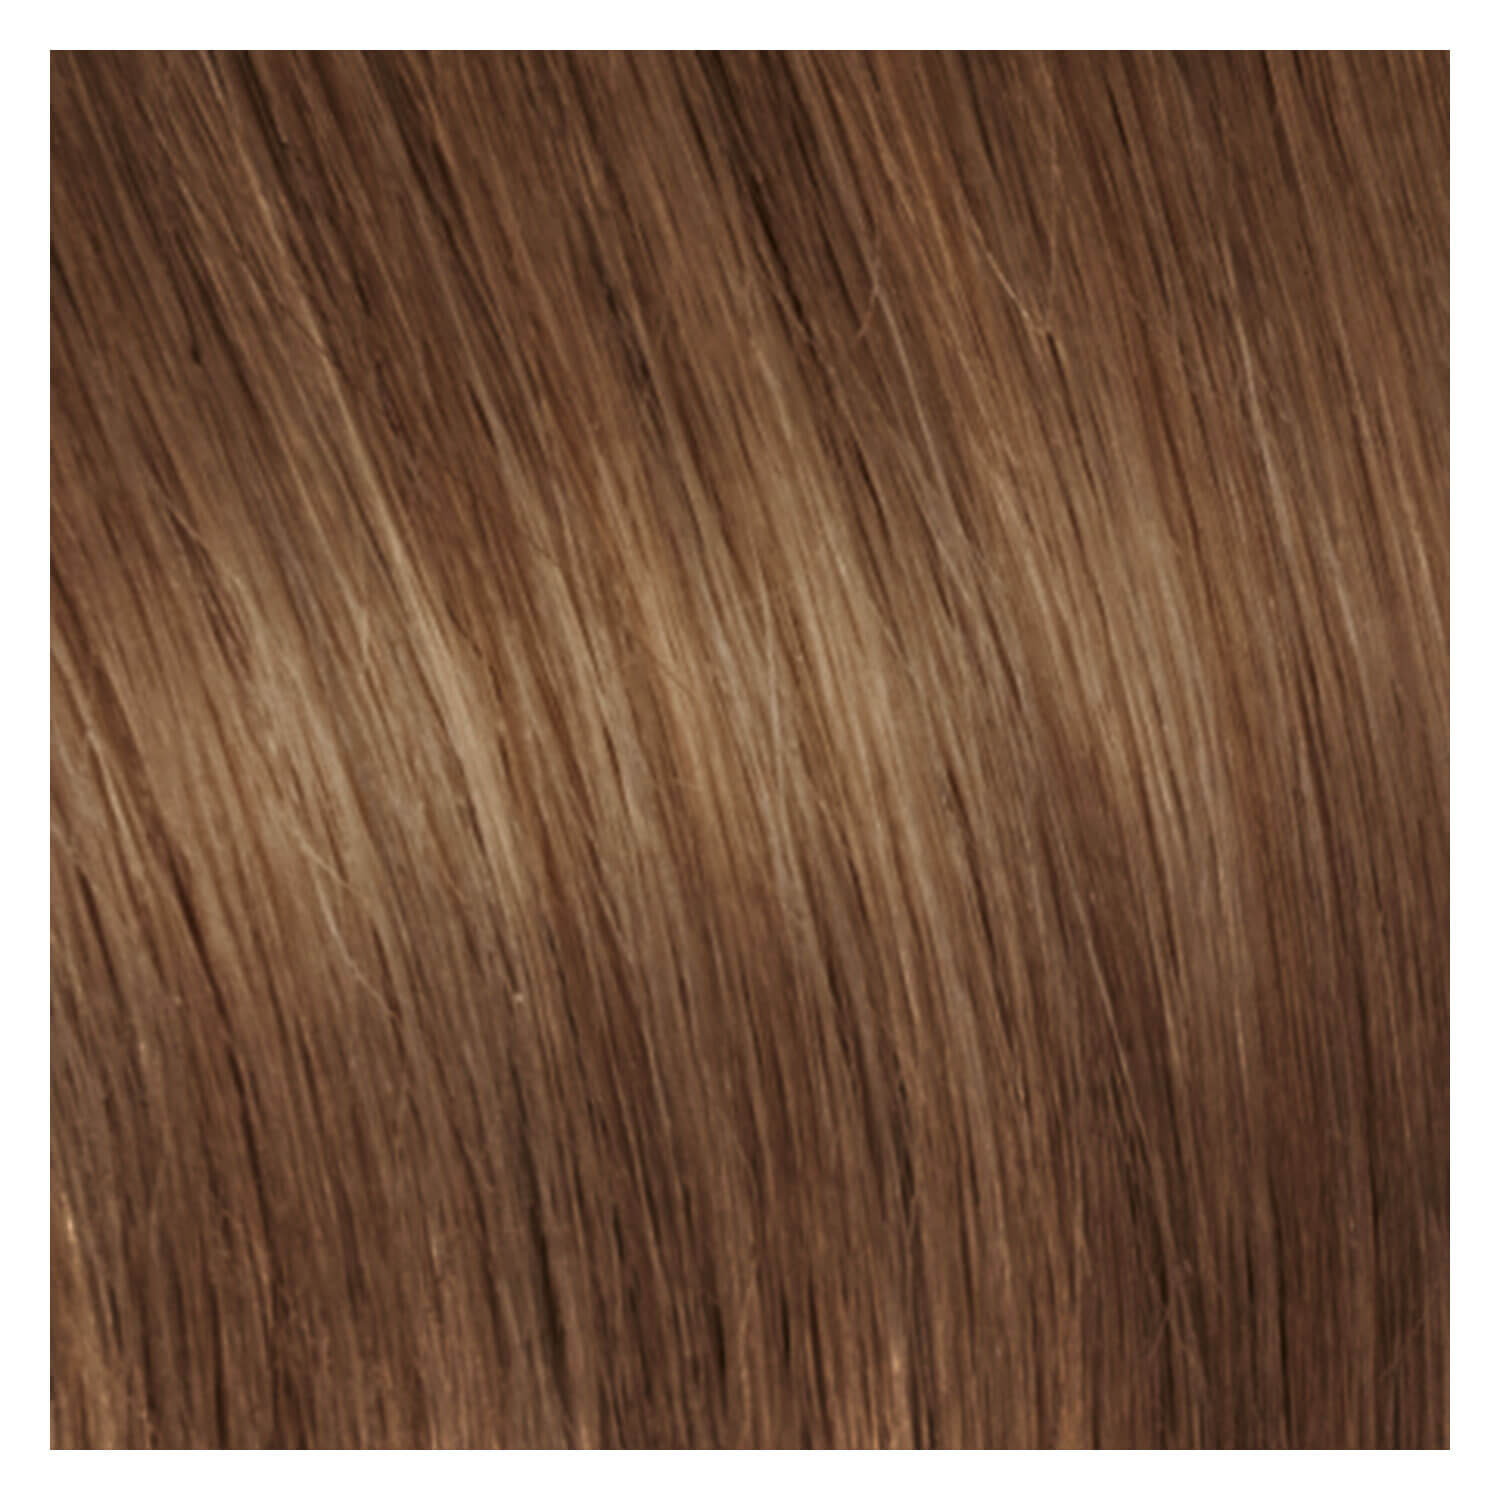 SHE Clip In-System Hair Extensions - 9-teiliges Set 12 Helles Goldblond 50/55cm